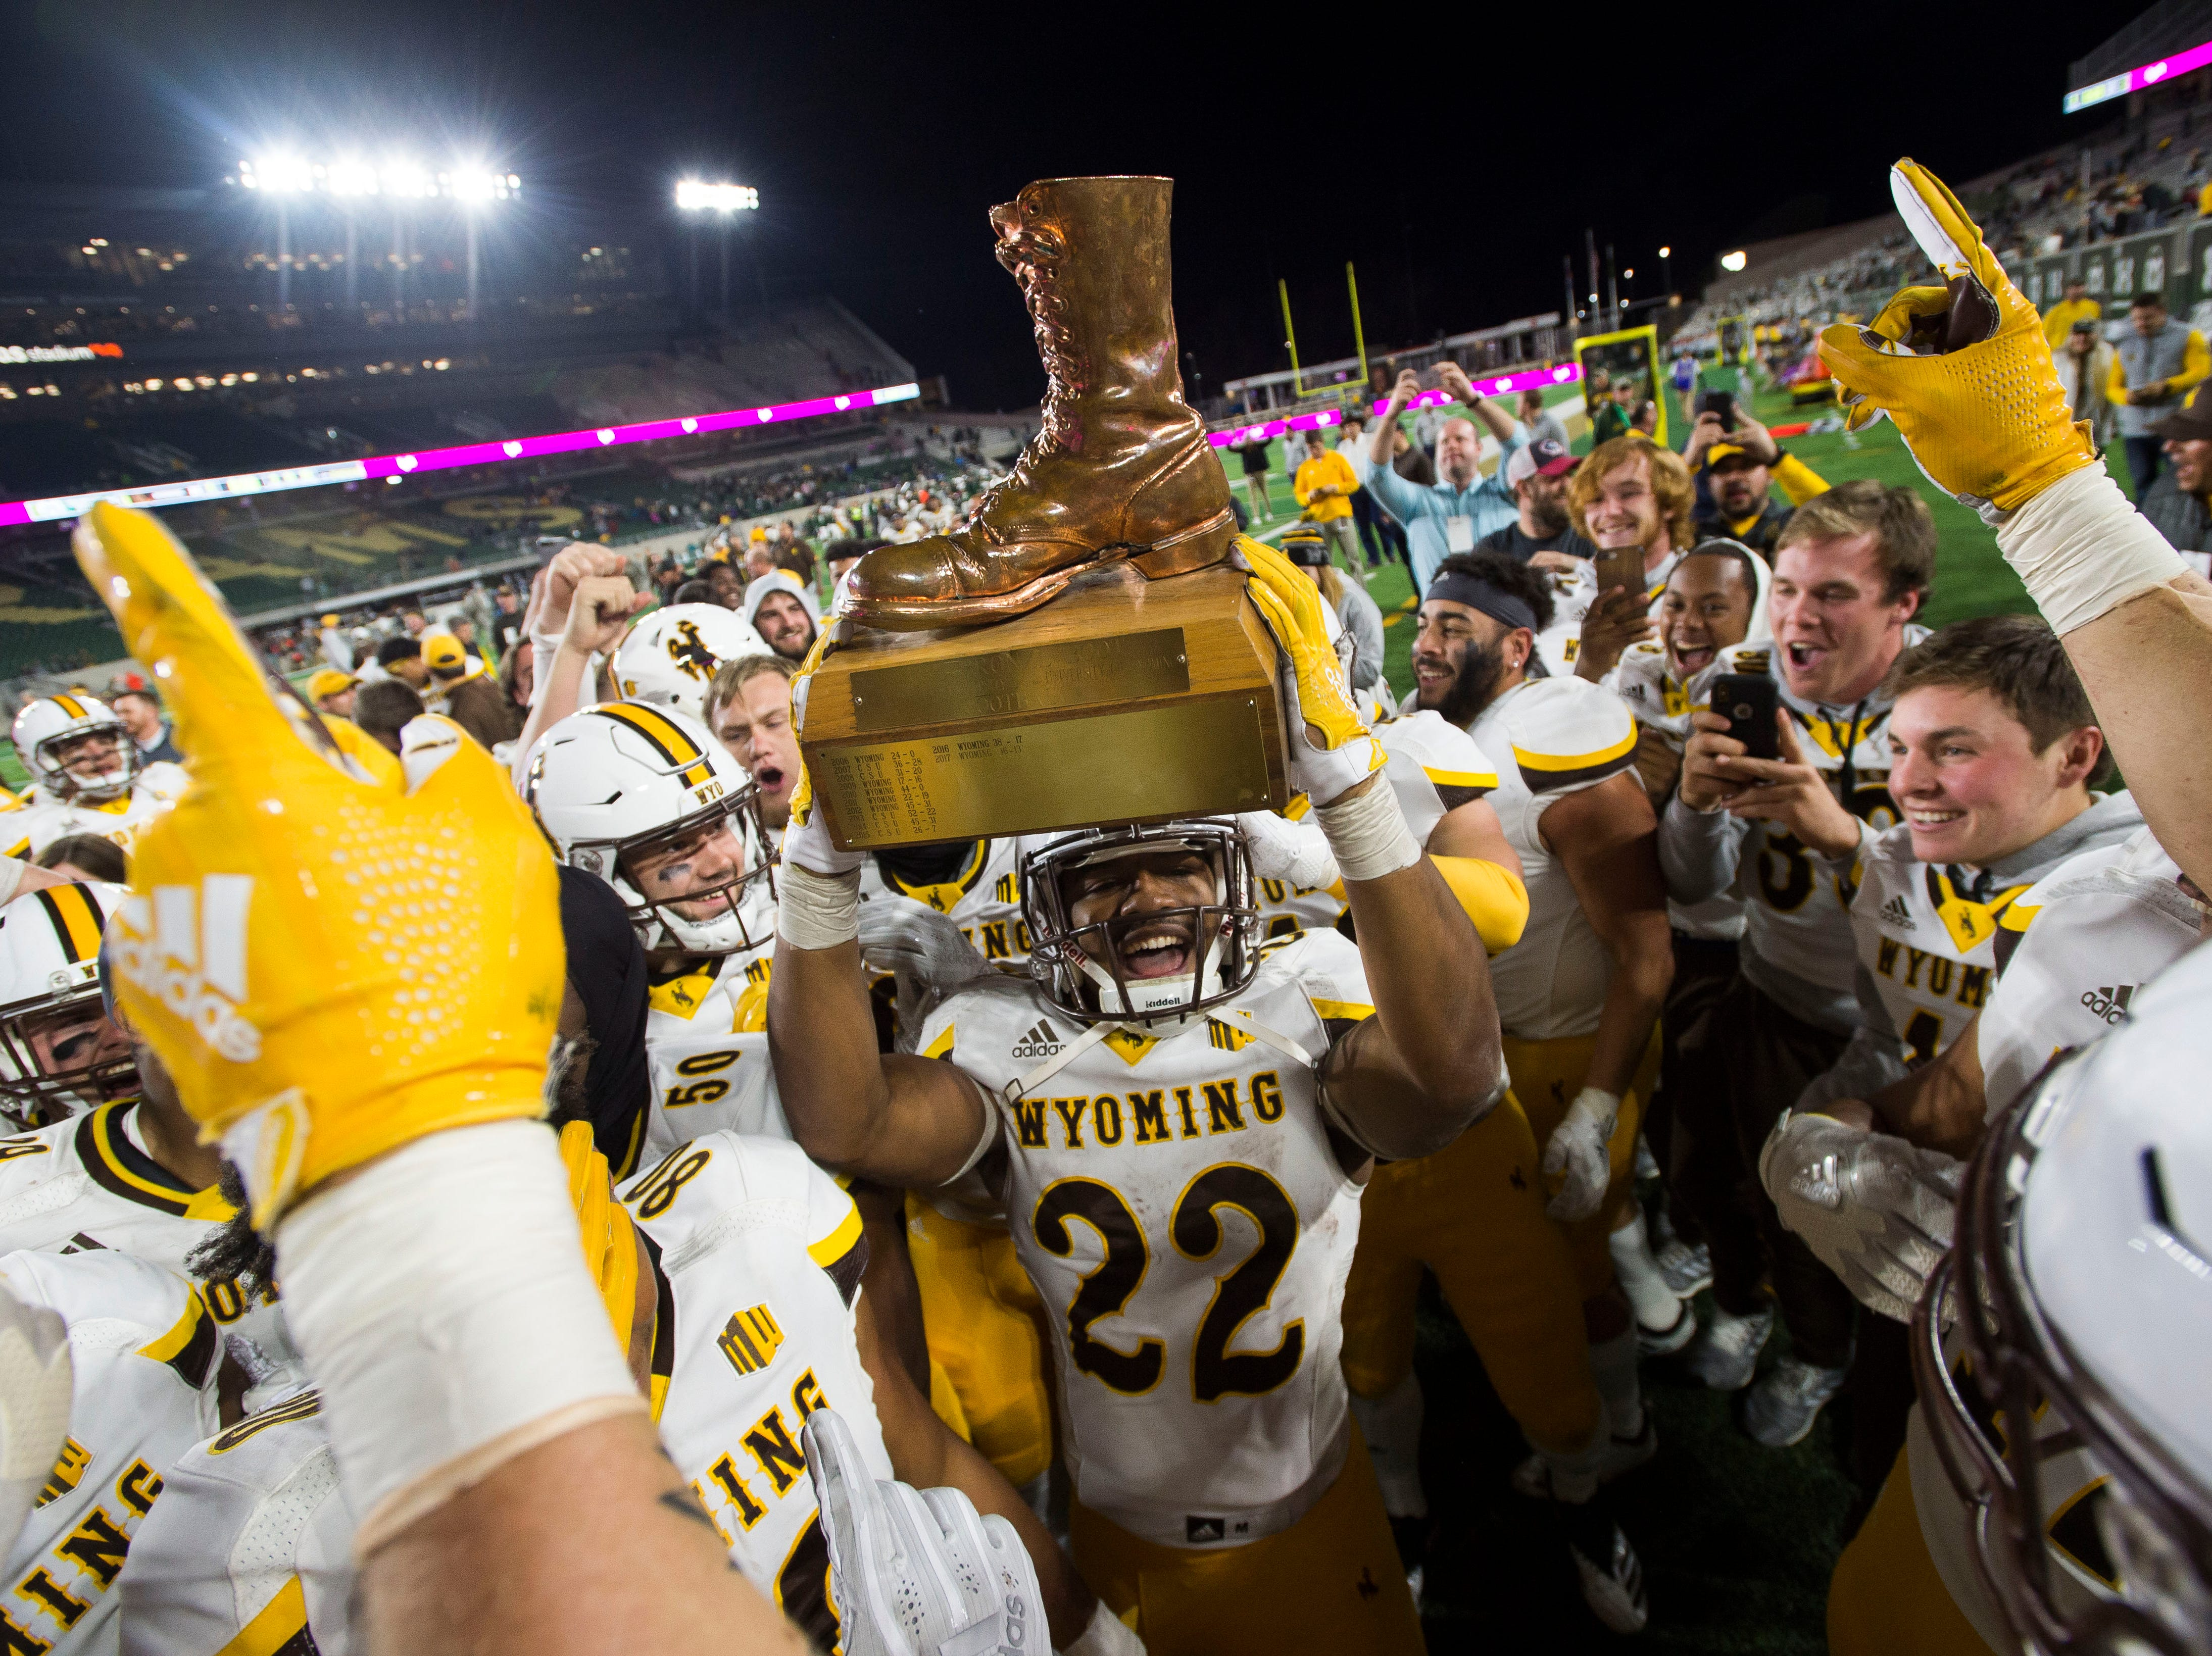 University of Wyoming senior running back Nico Evans (22) hoists up the bronze boot trophy after beating rival Colorado State University of on Friday, Oct. 26, 2018, at Canvas Stadium in Fort Collins, Colo.